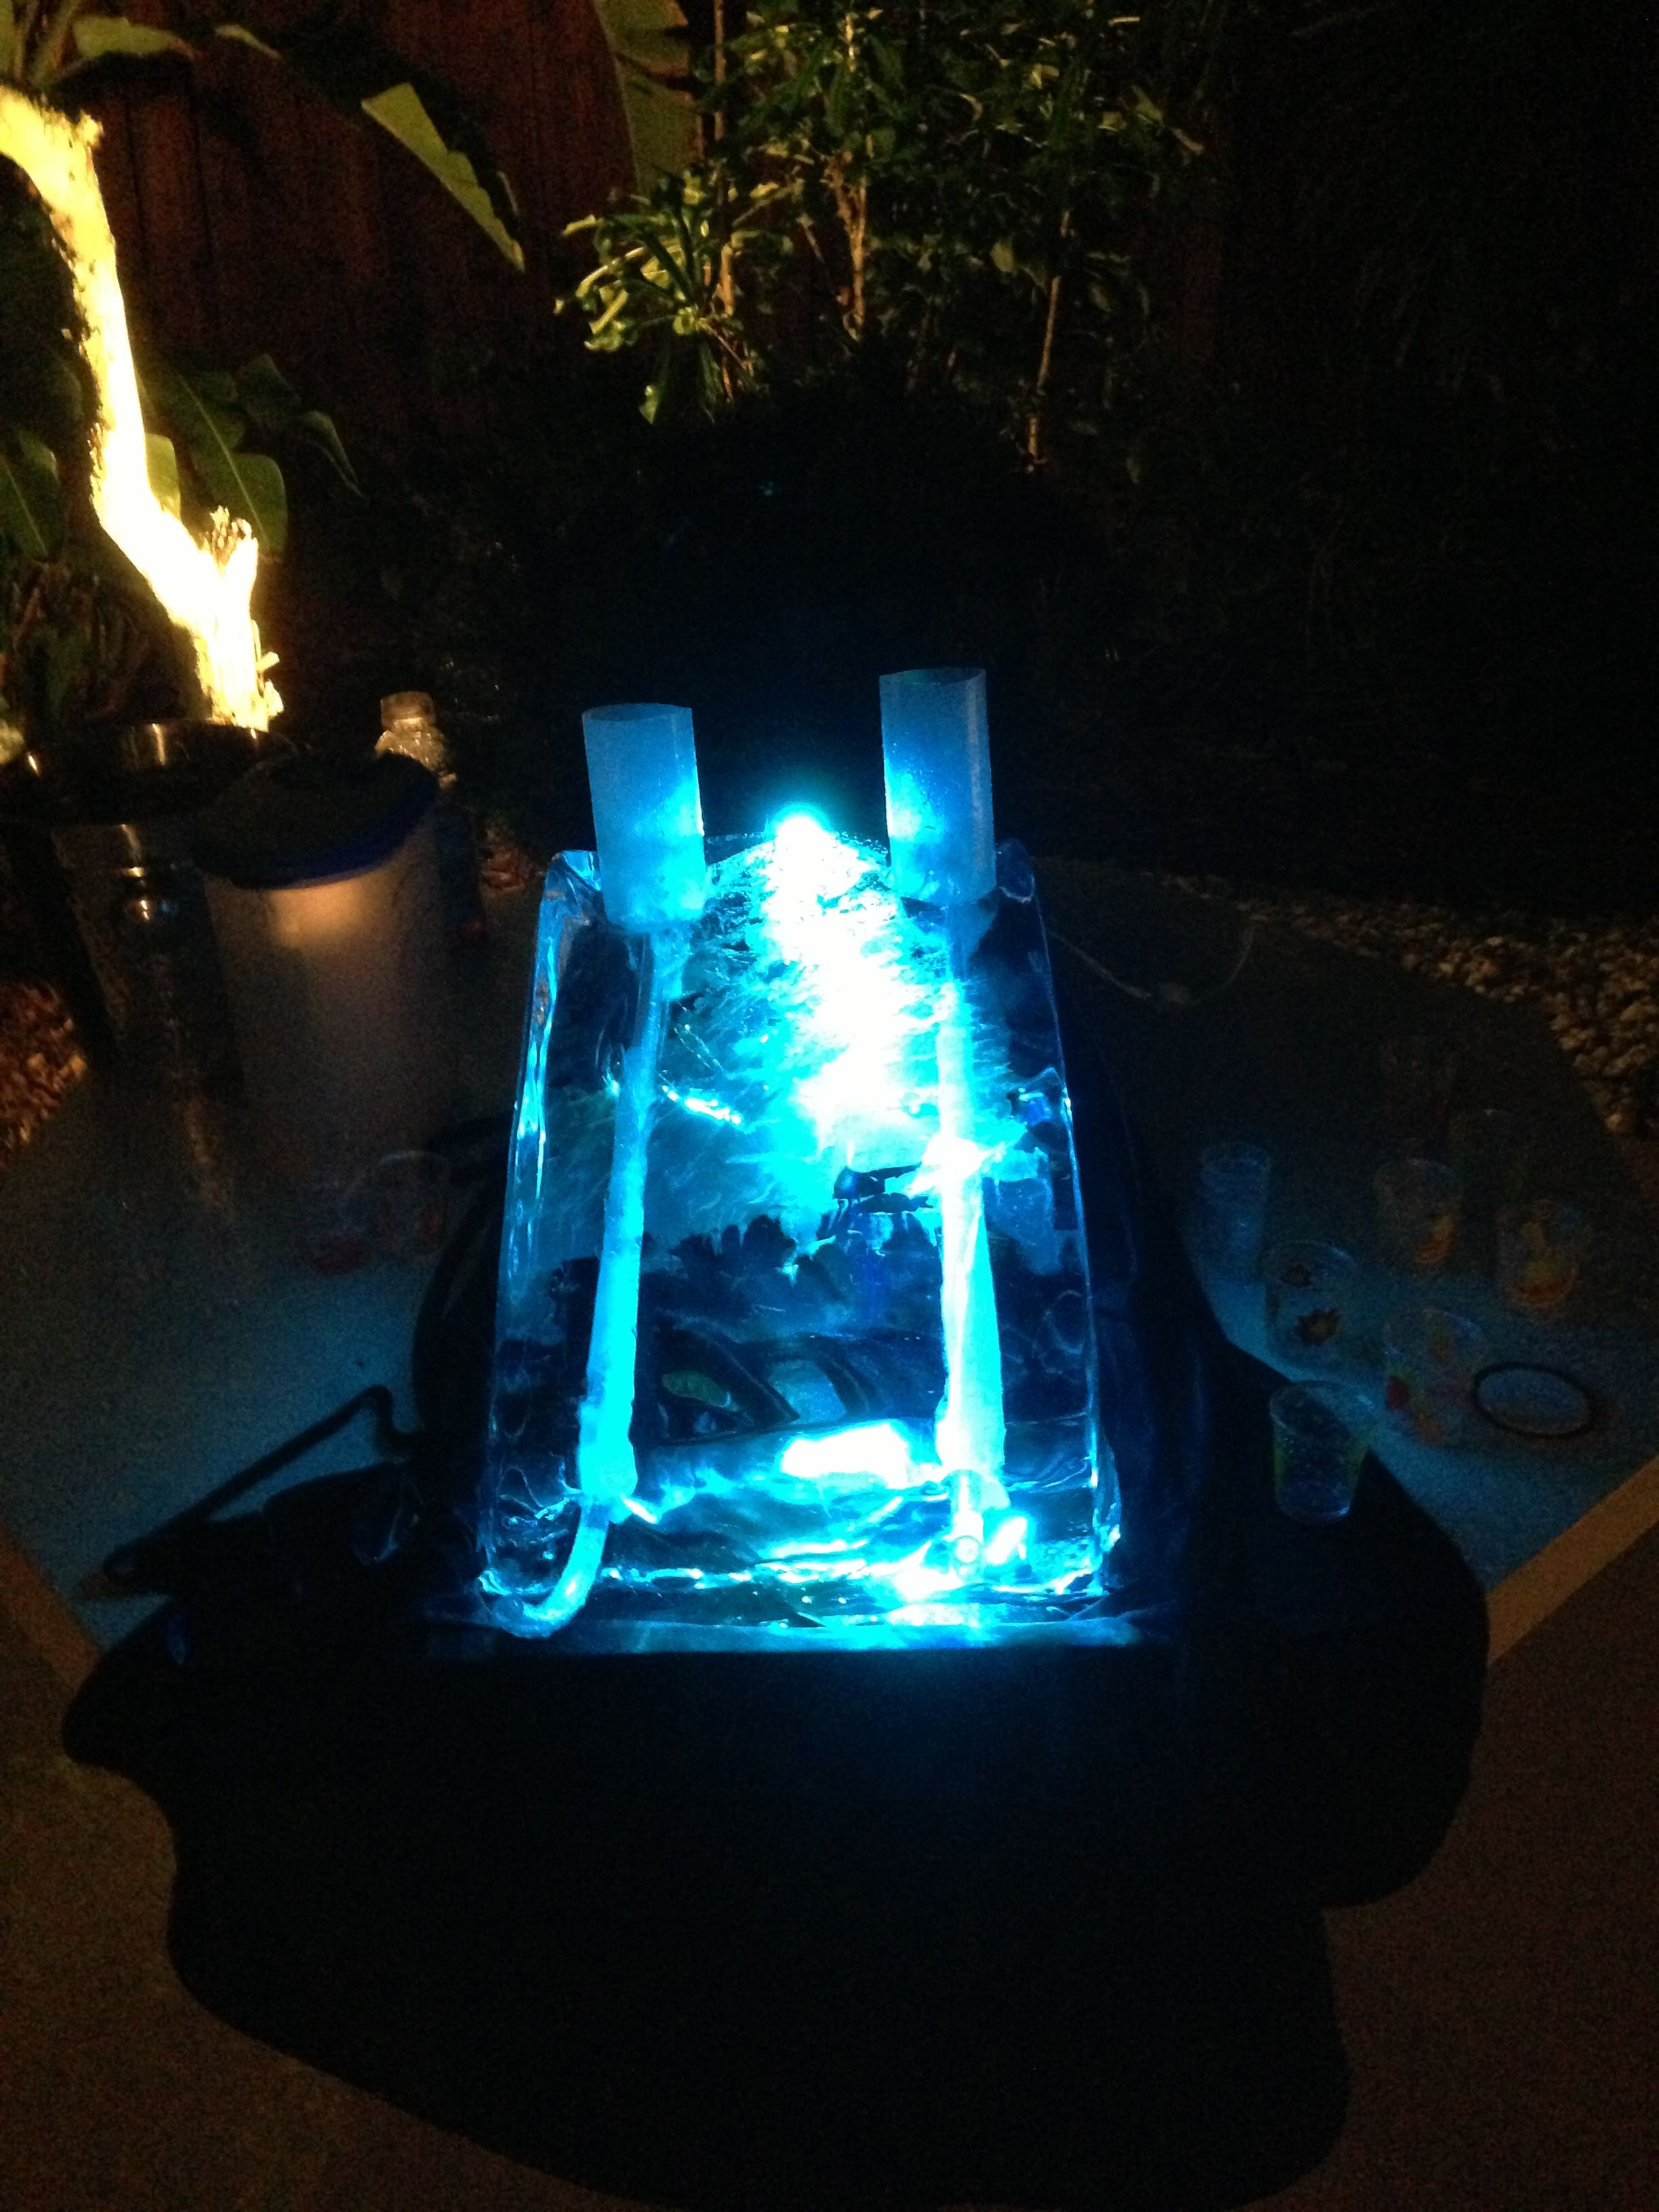 Make DIY ice shot luge for parties for $15. Bought 50lb ice block ...